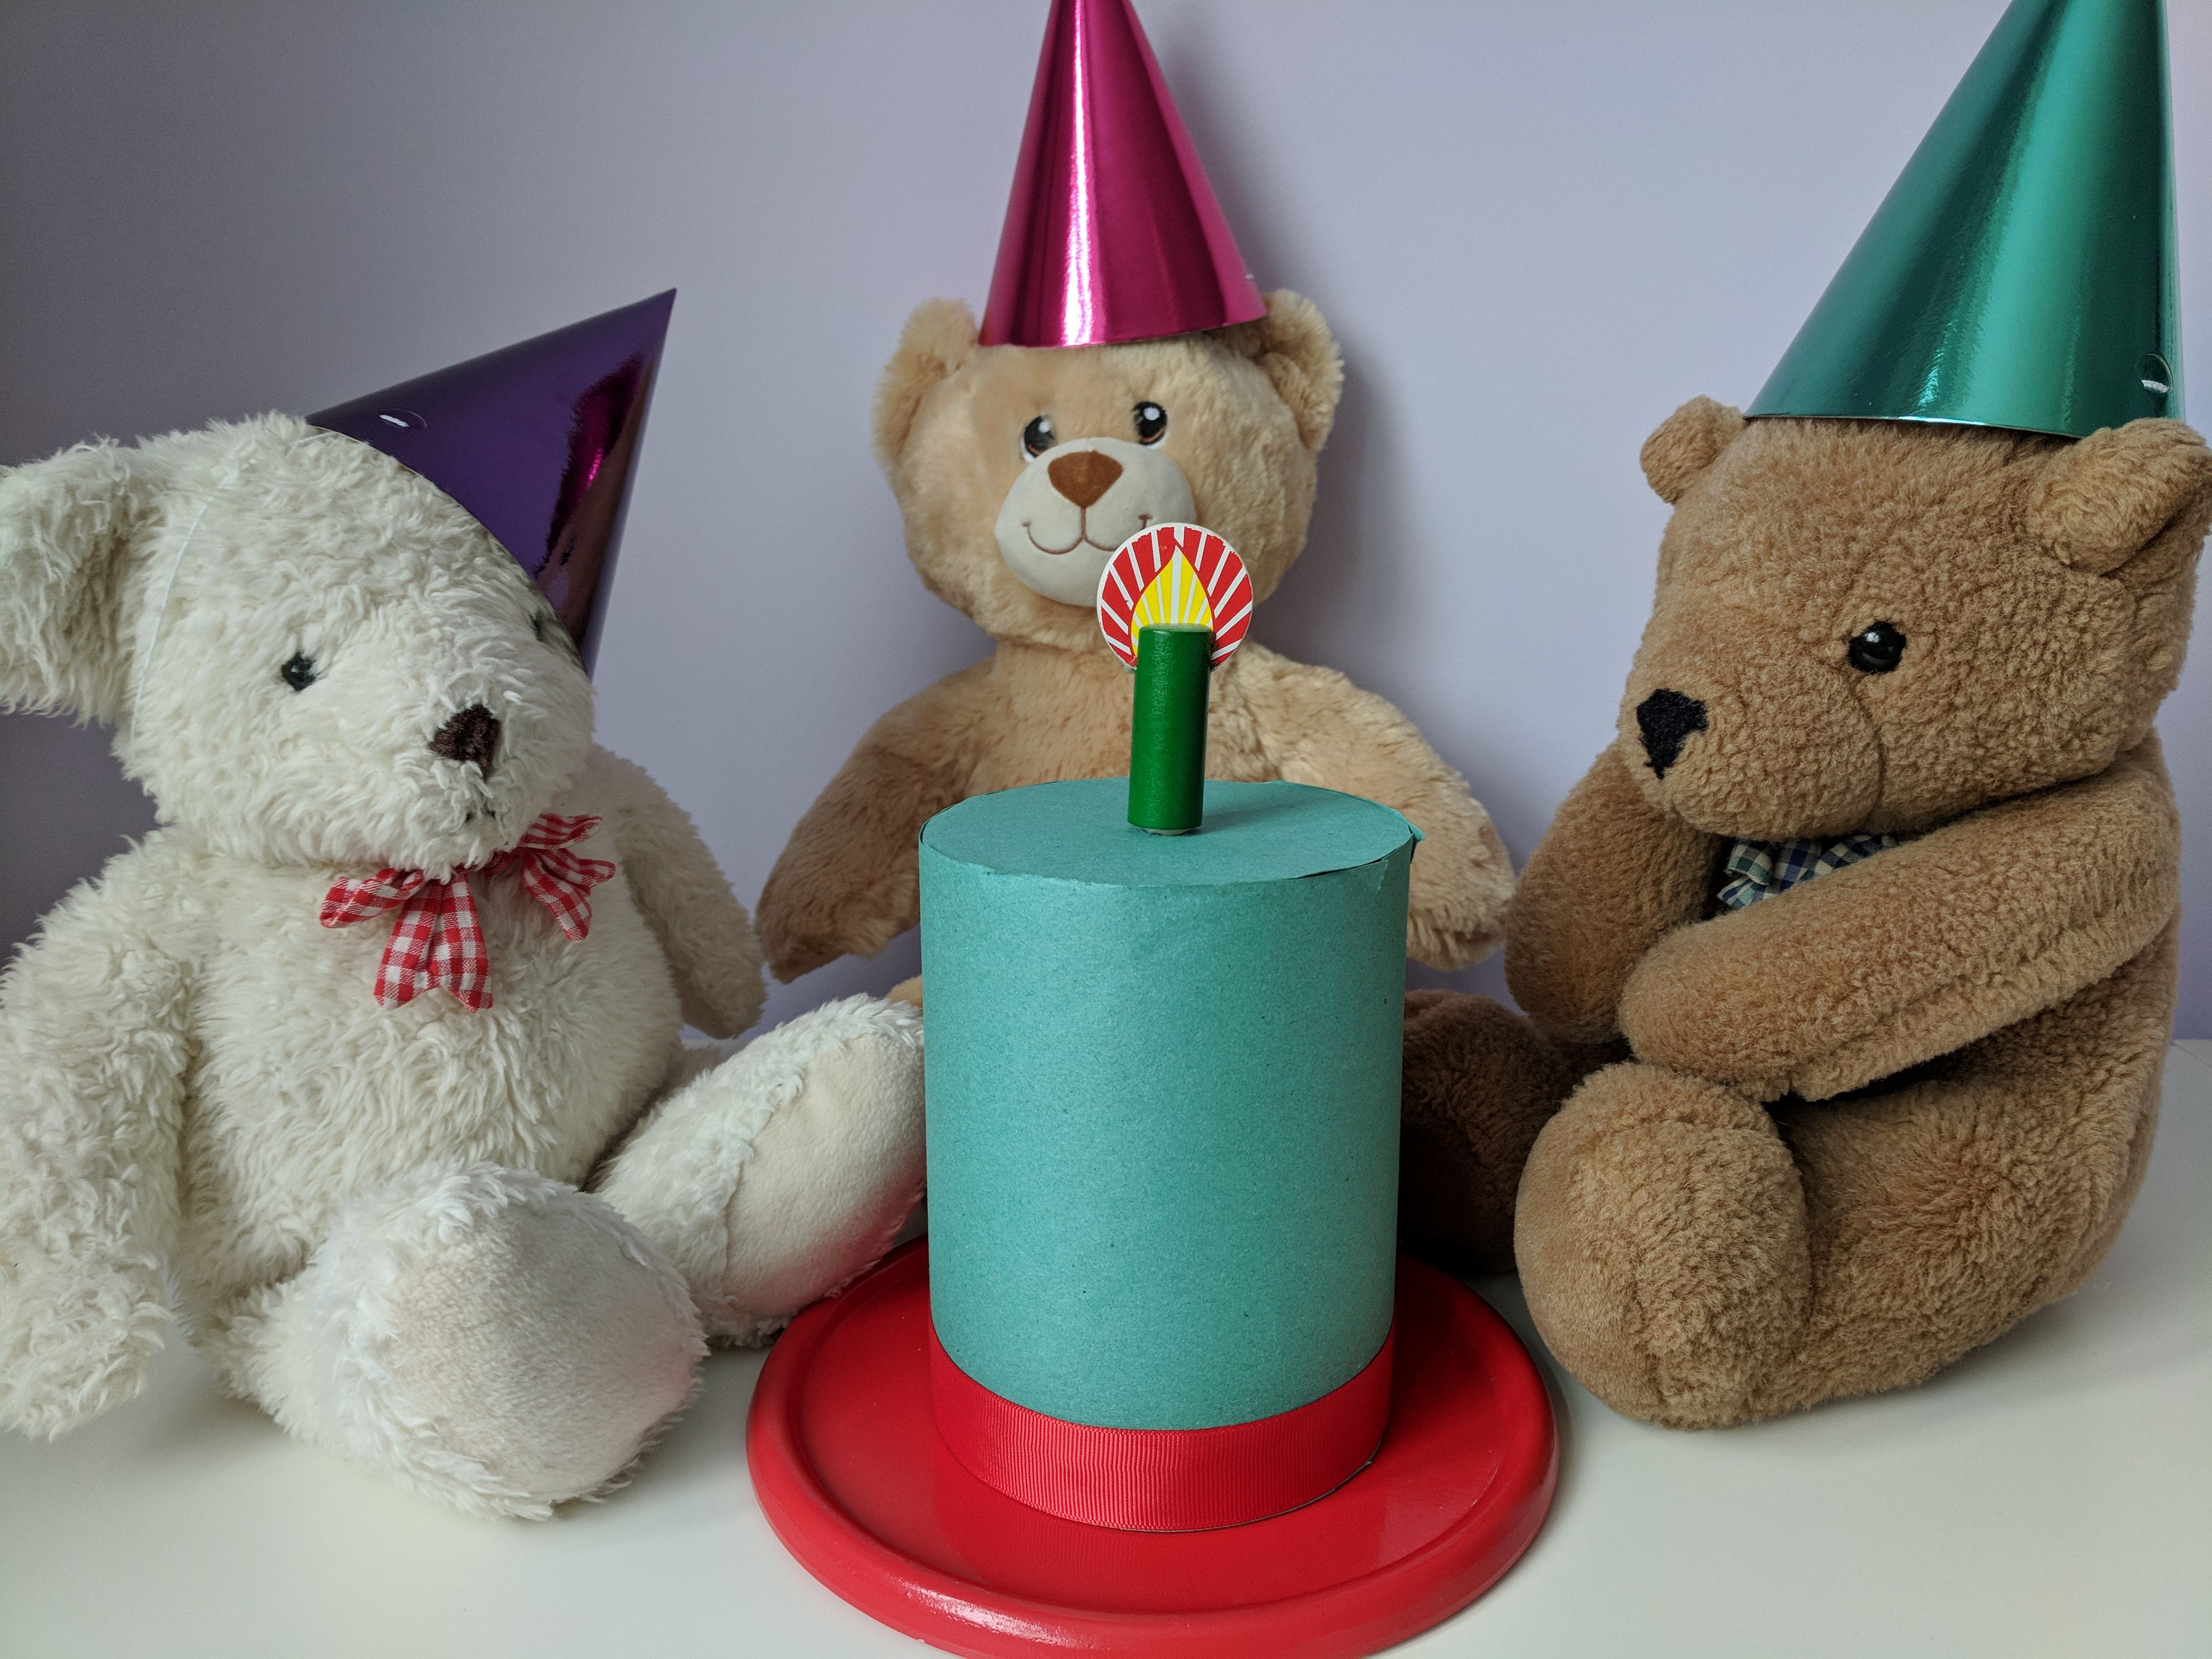 Bring Your Stuff Toy Birthday Party